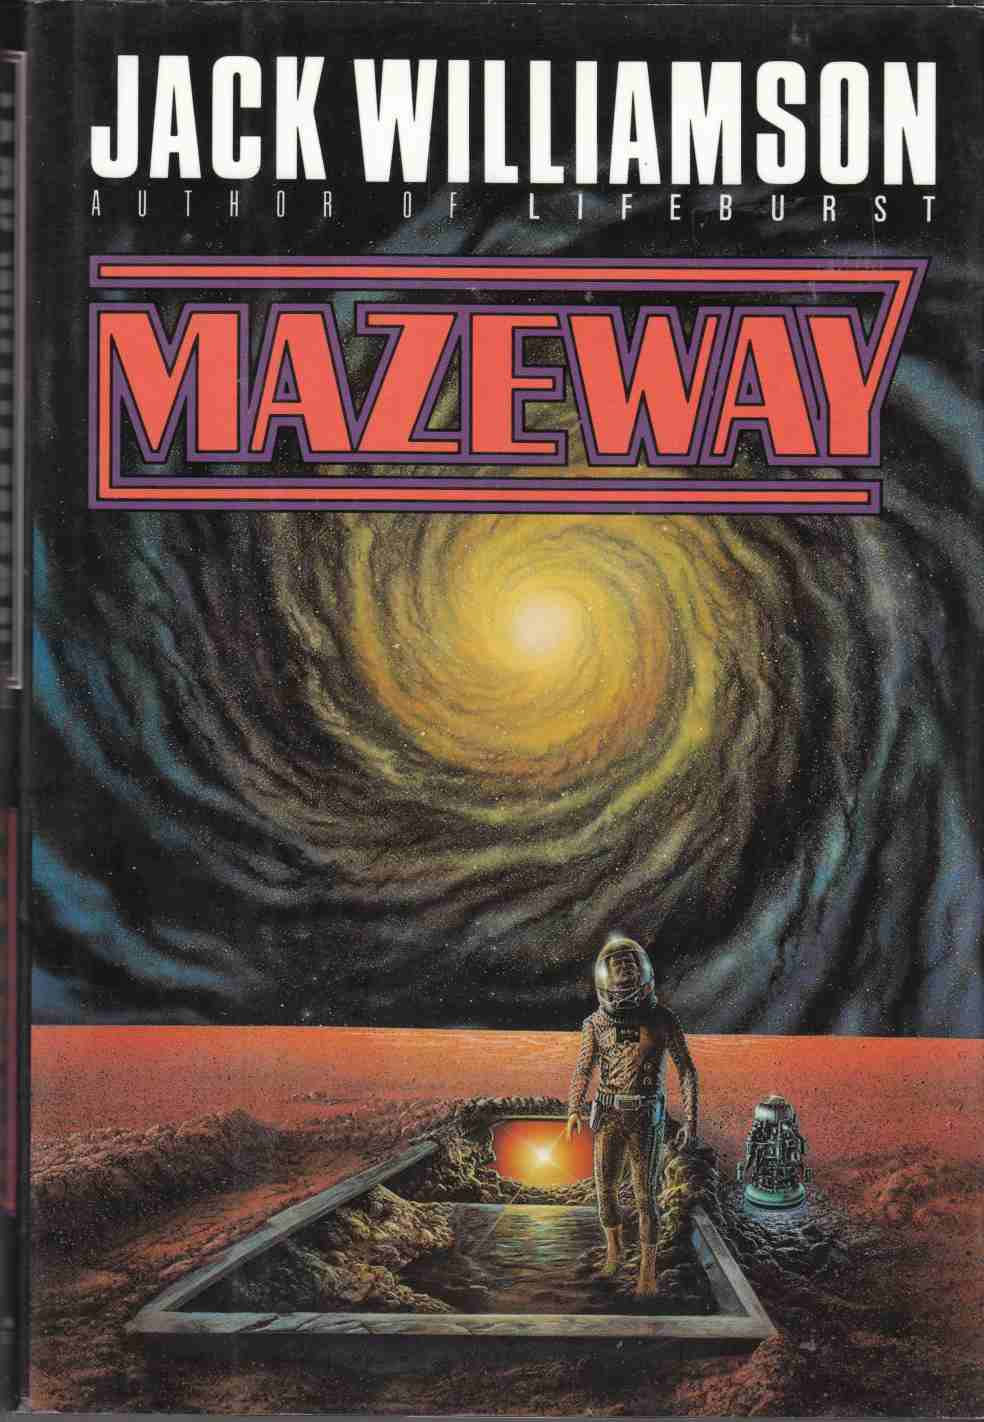 Image for The Mazeway